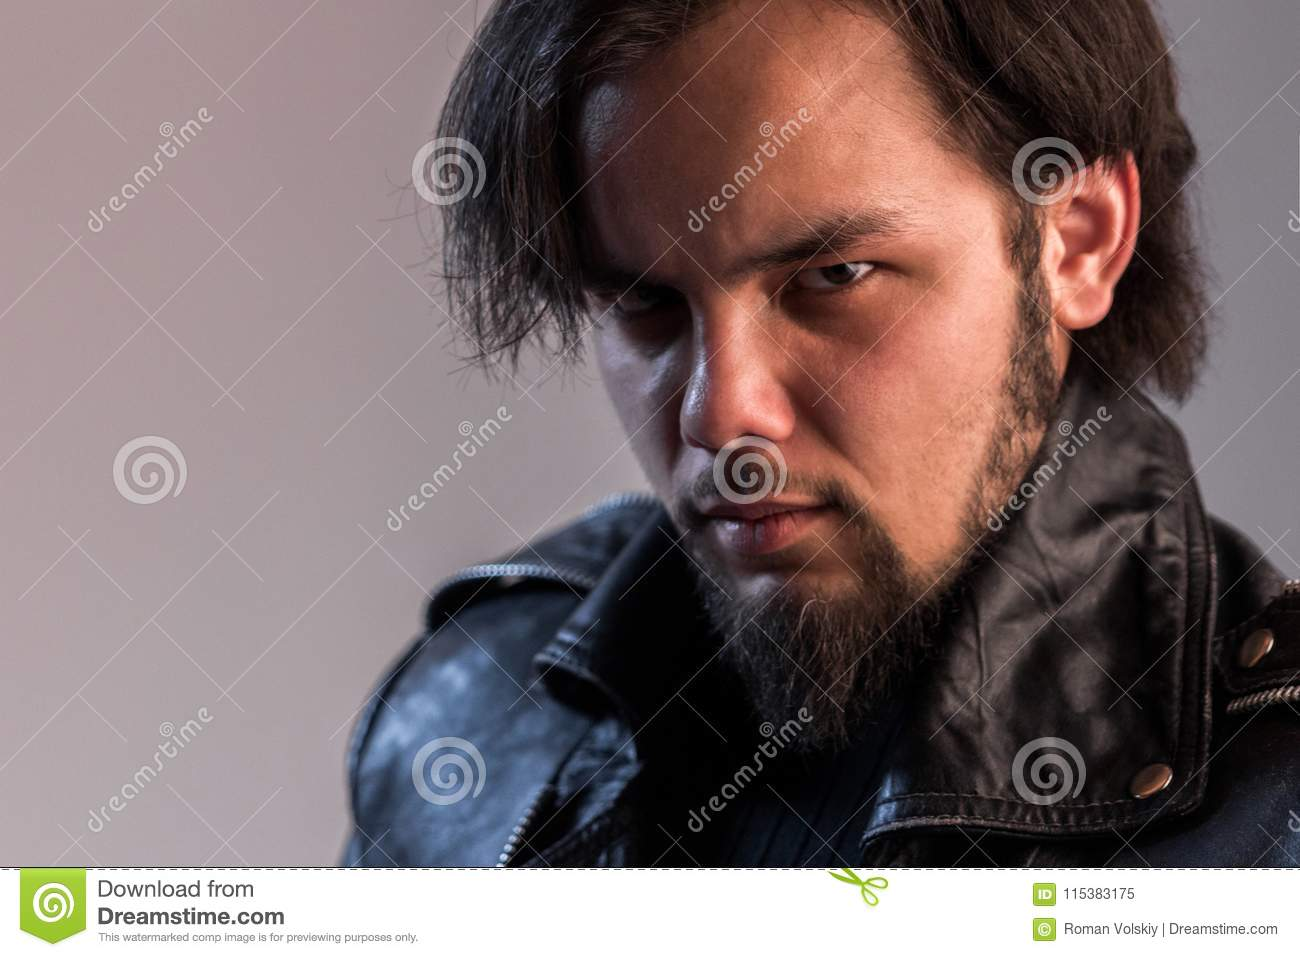 Terrible Look Of The Guy With A Beard In A Black Leather Jacket